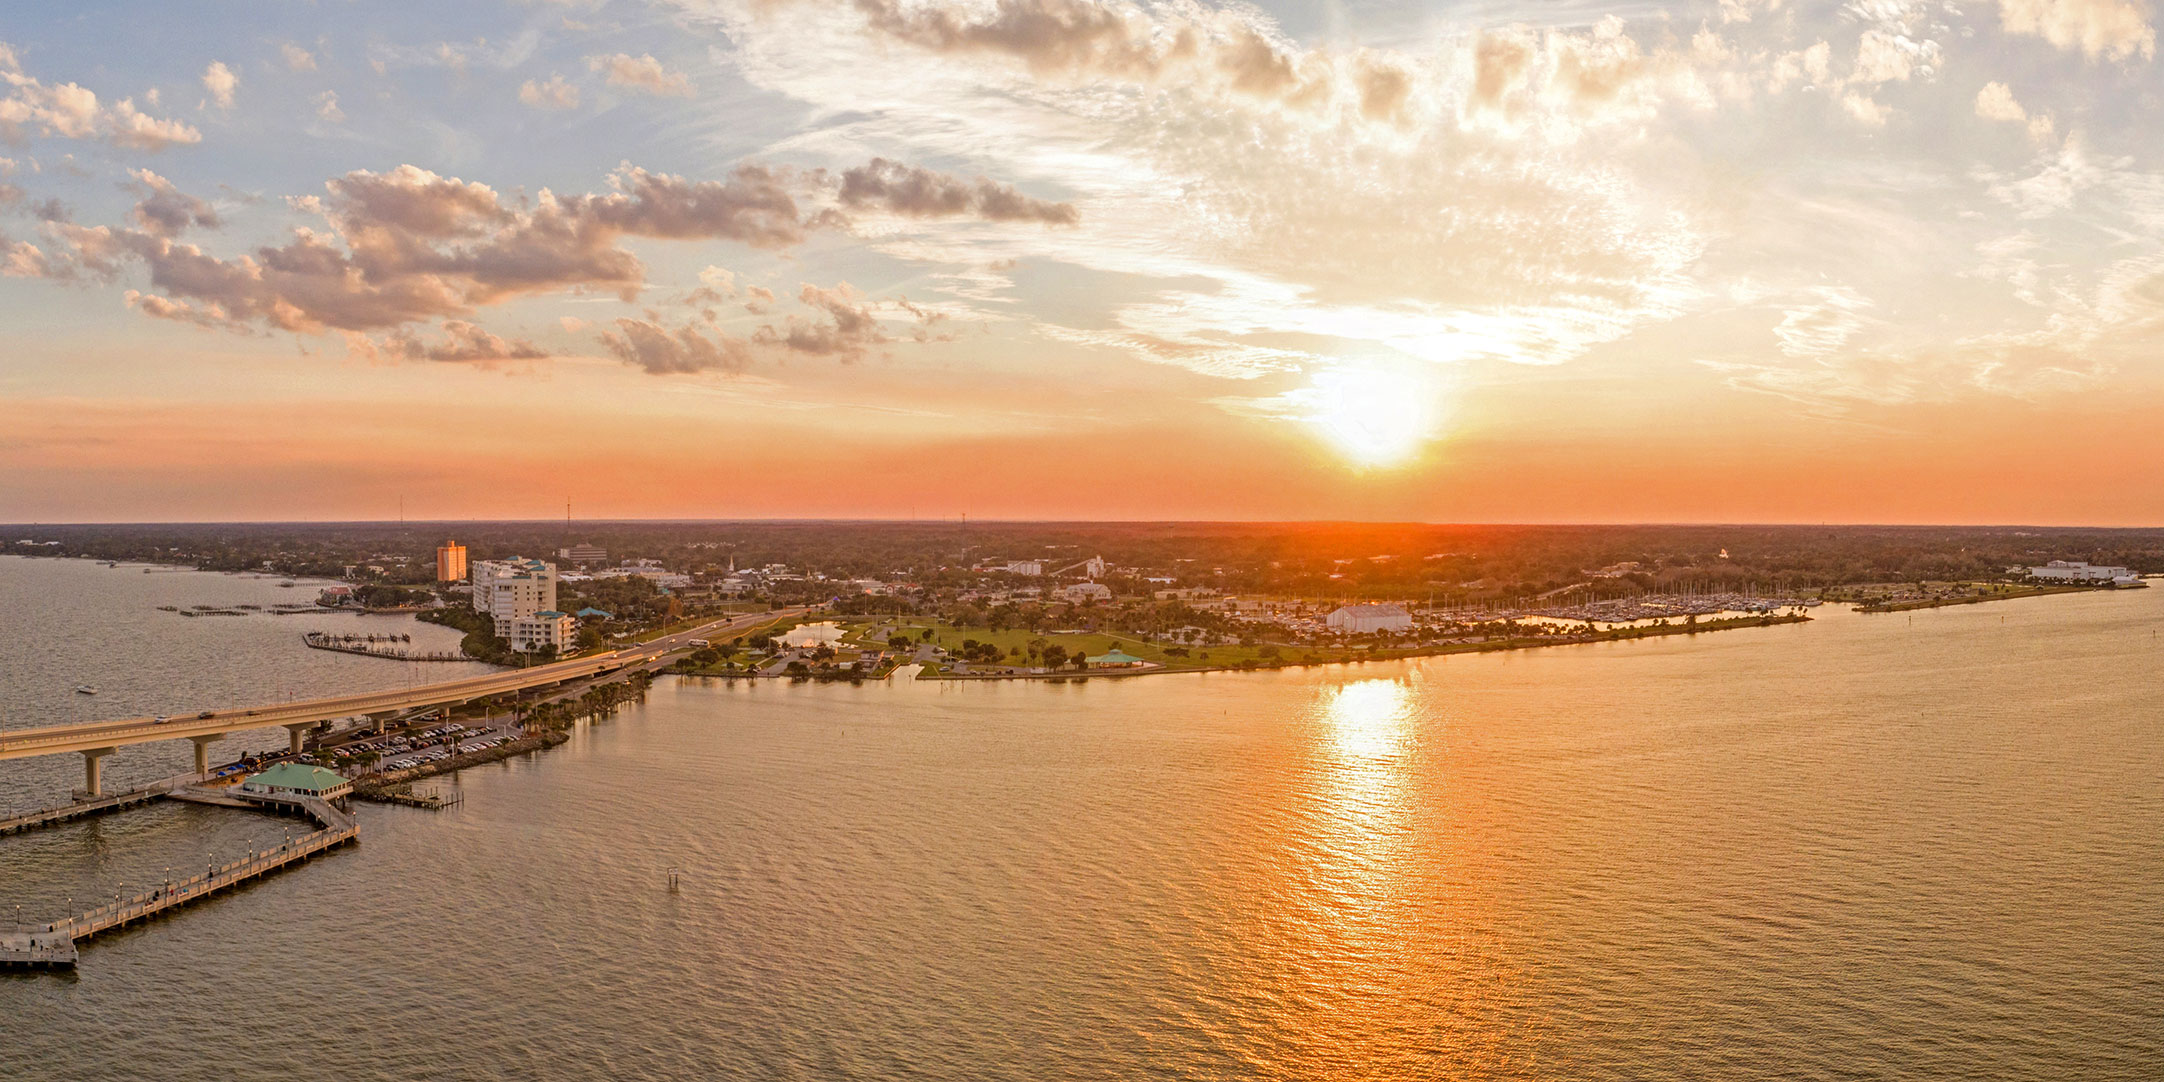 Aerial Panoramic of Titusville, Florida by Biz360Tours. All Rights Reserved